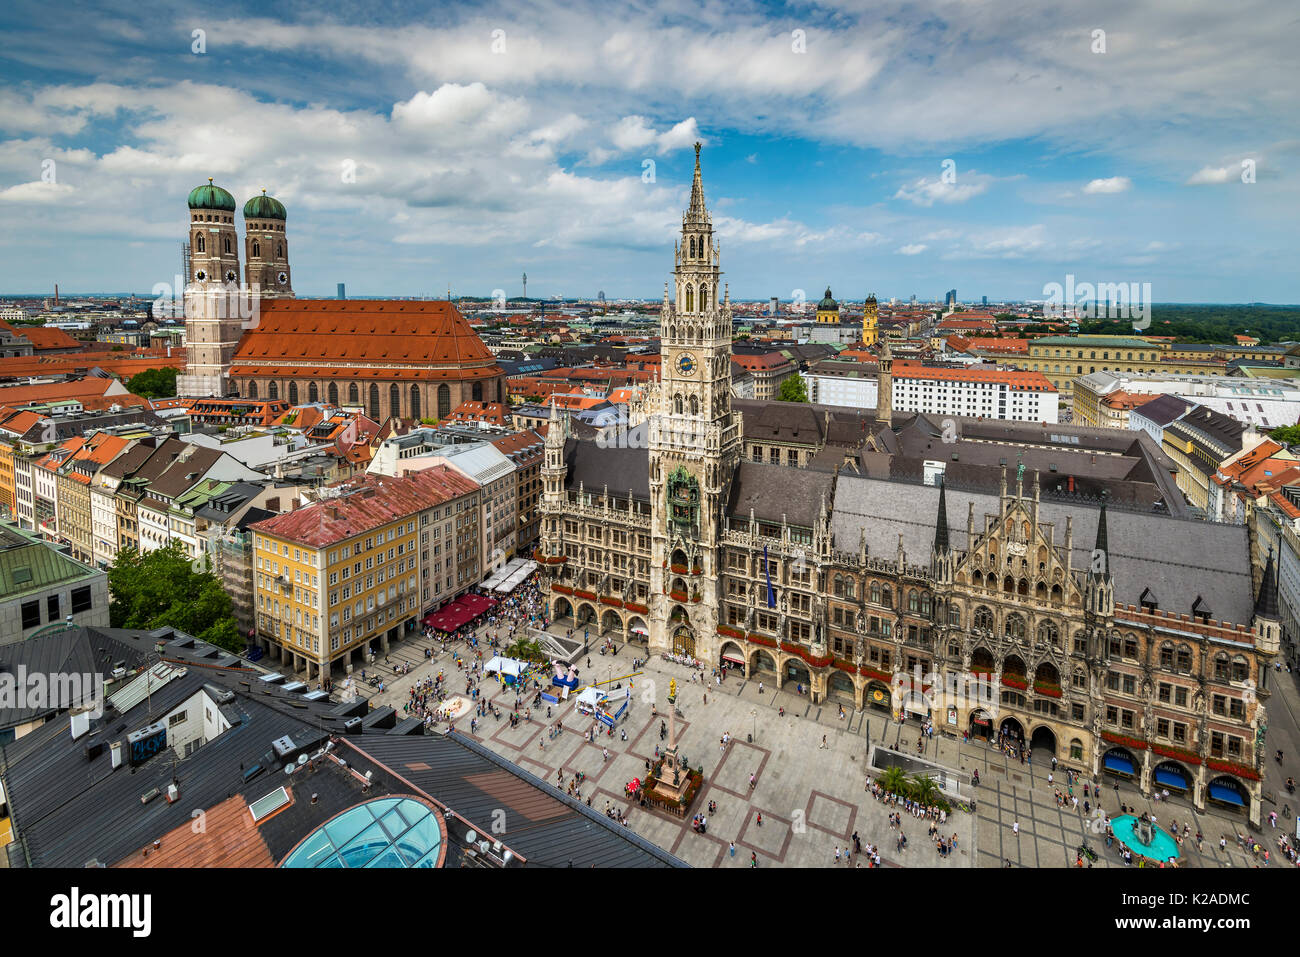 City skyline with Frauenkirche cathedral and new city hall or Neues Rathaus, Munich, Bavaria, Germany - Stock Image